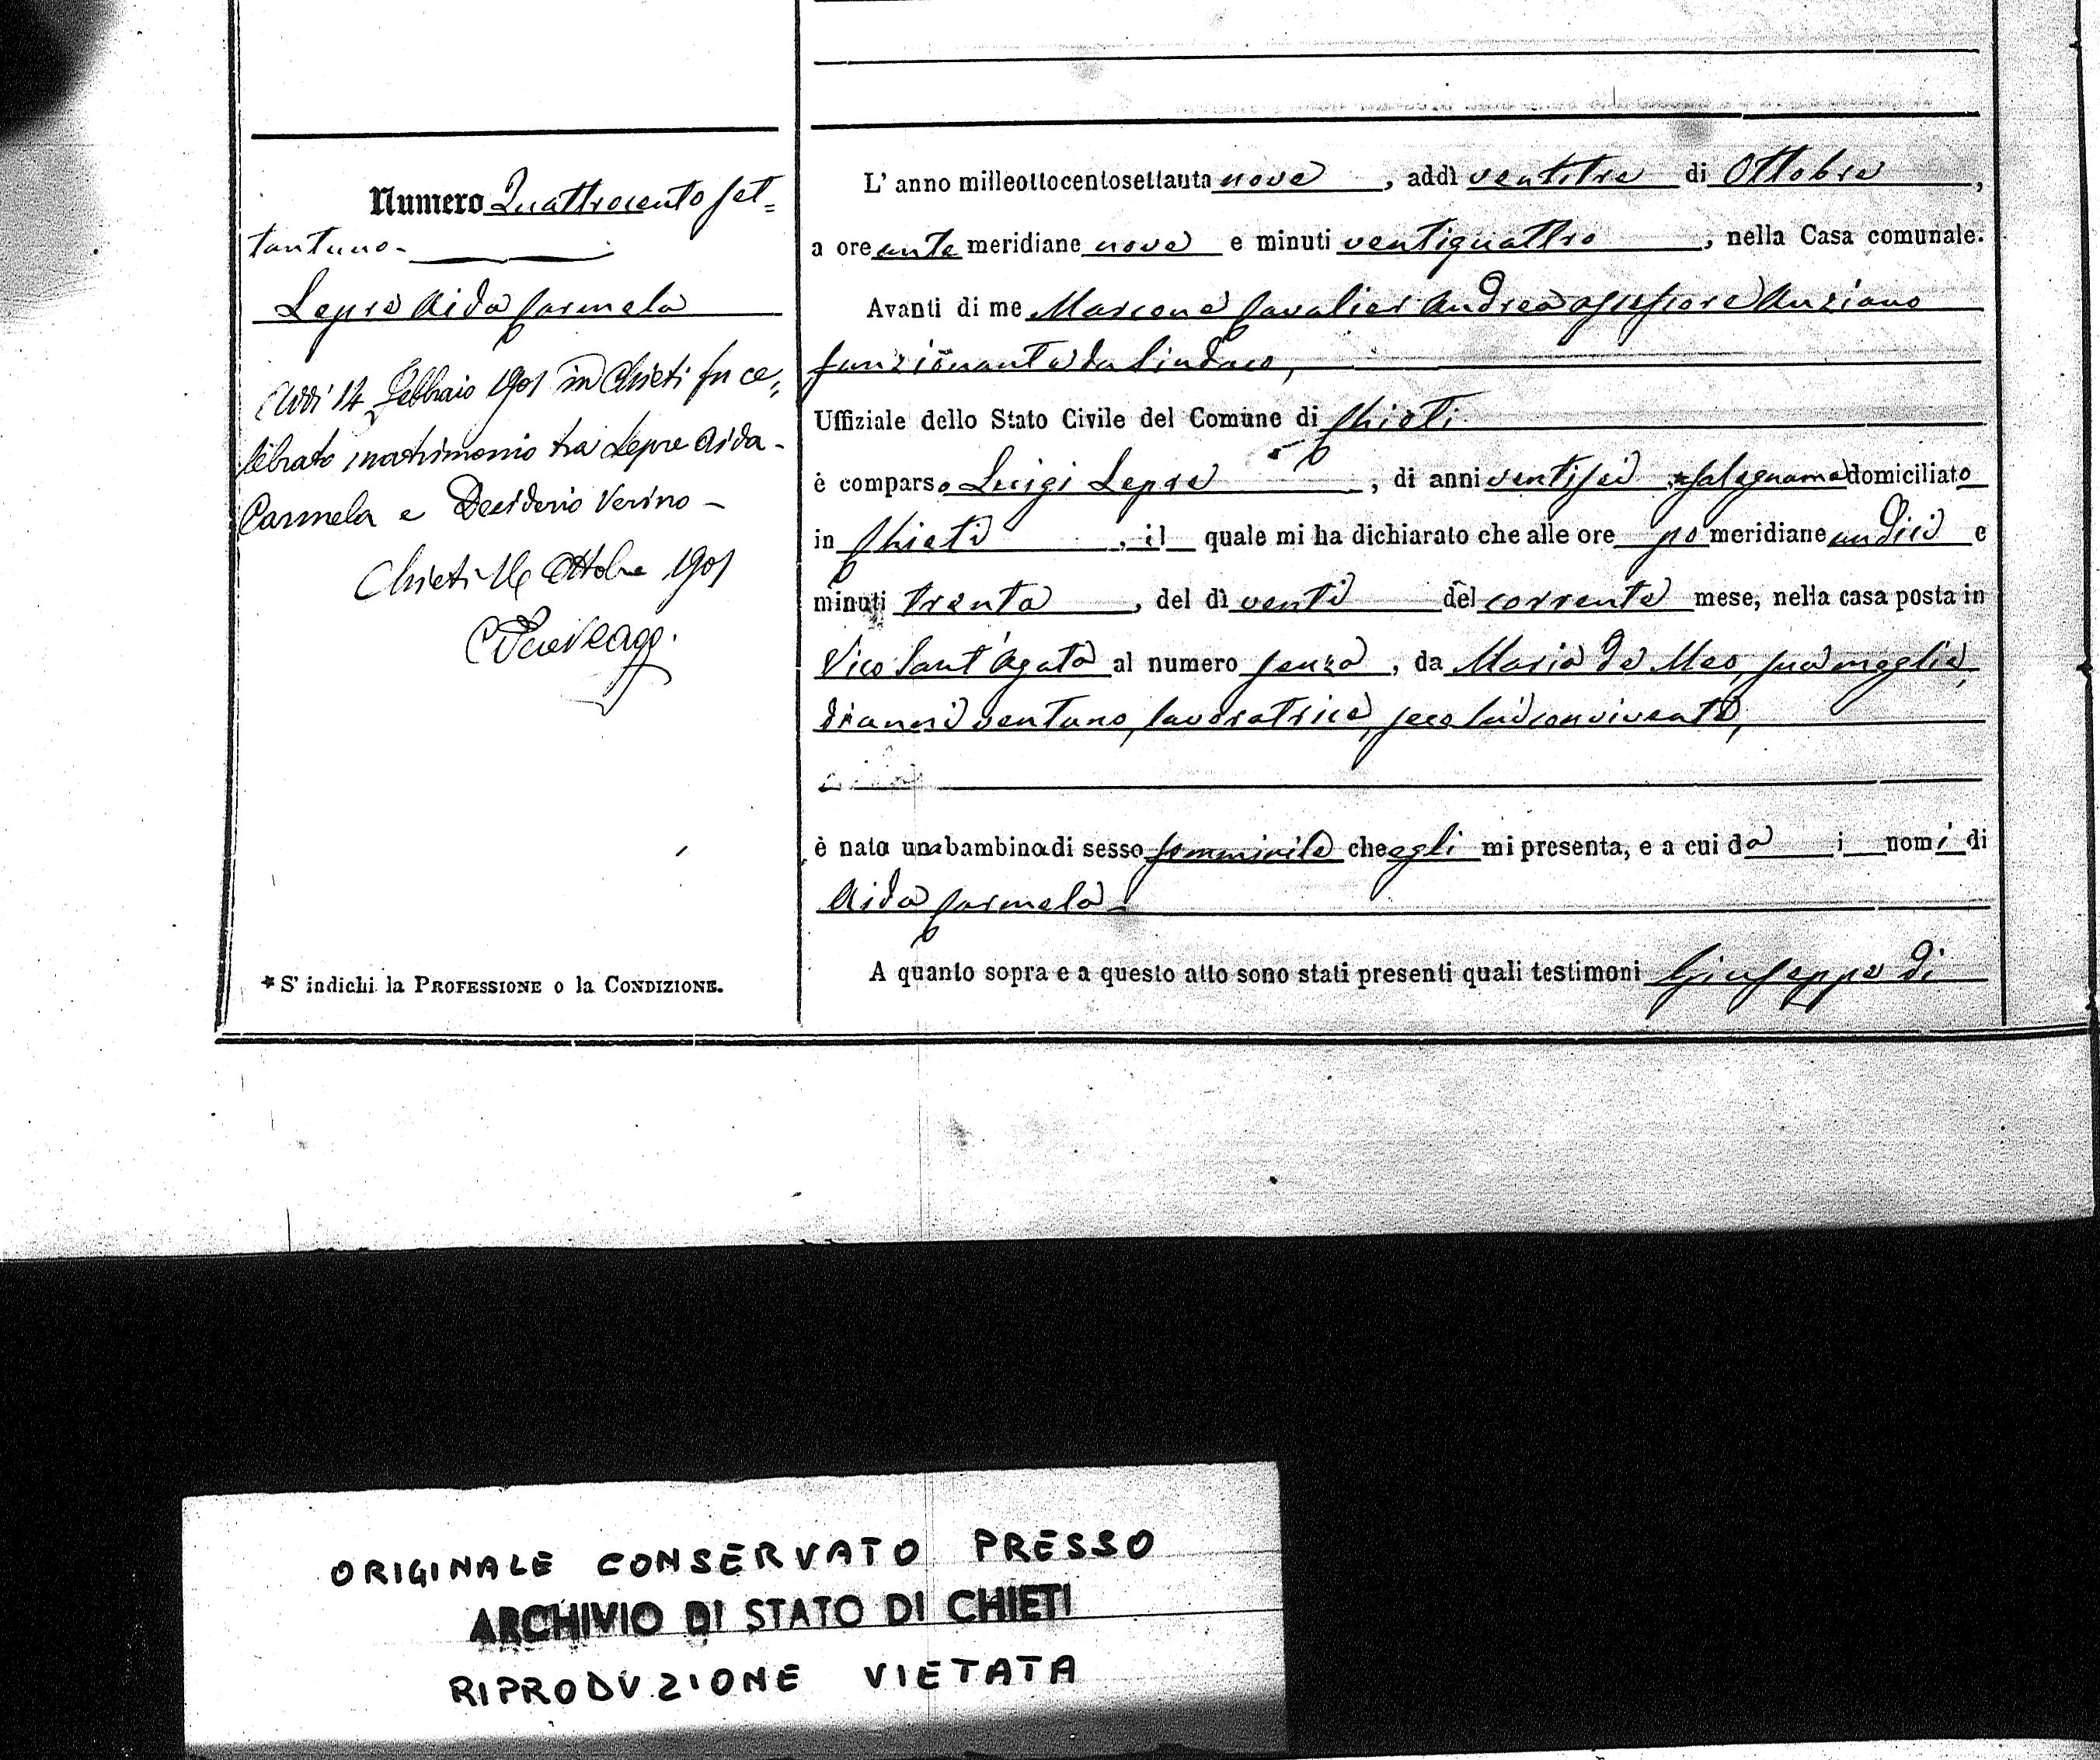 Pascali family history birth certificate 1betcityfo Gallery